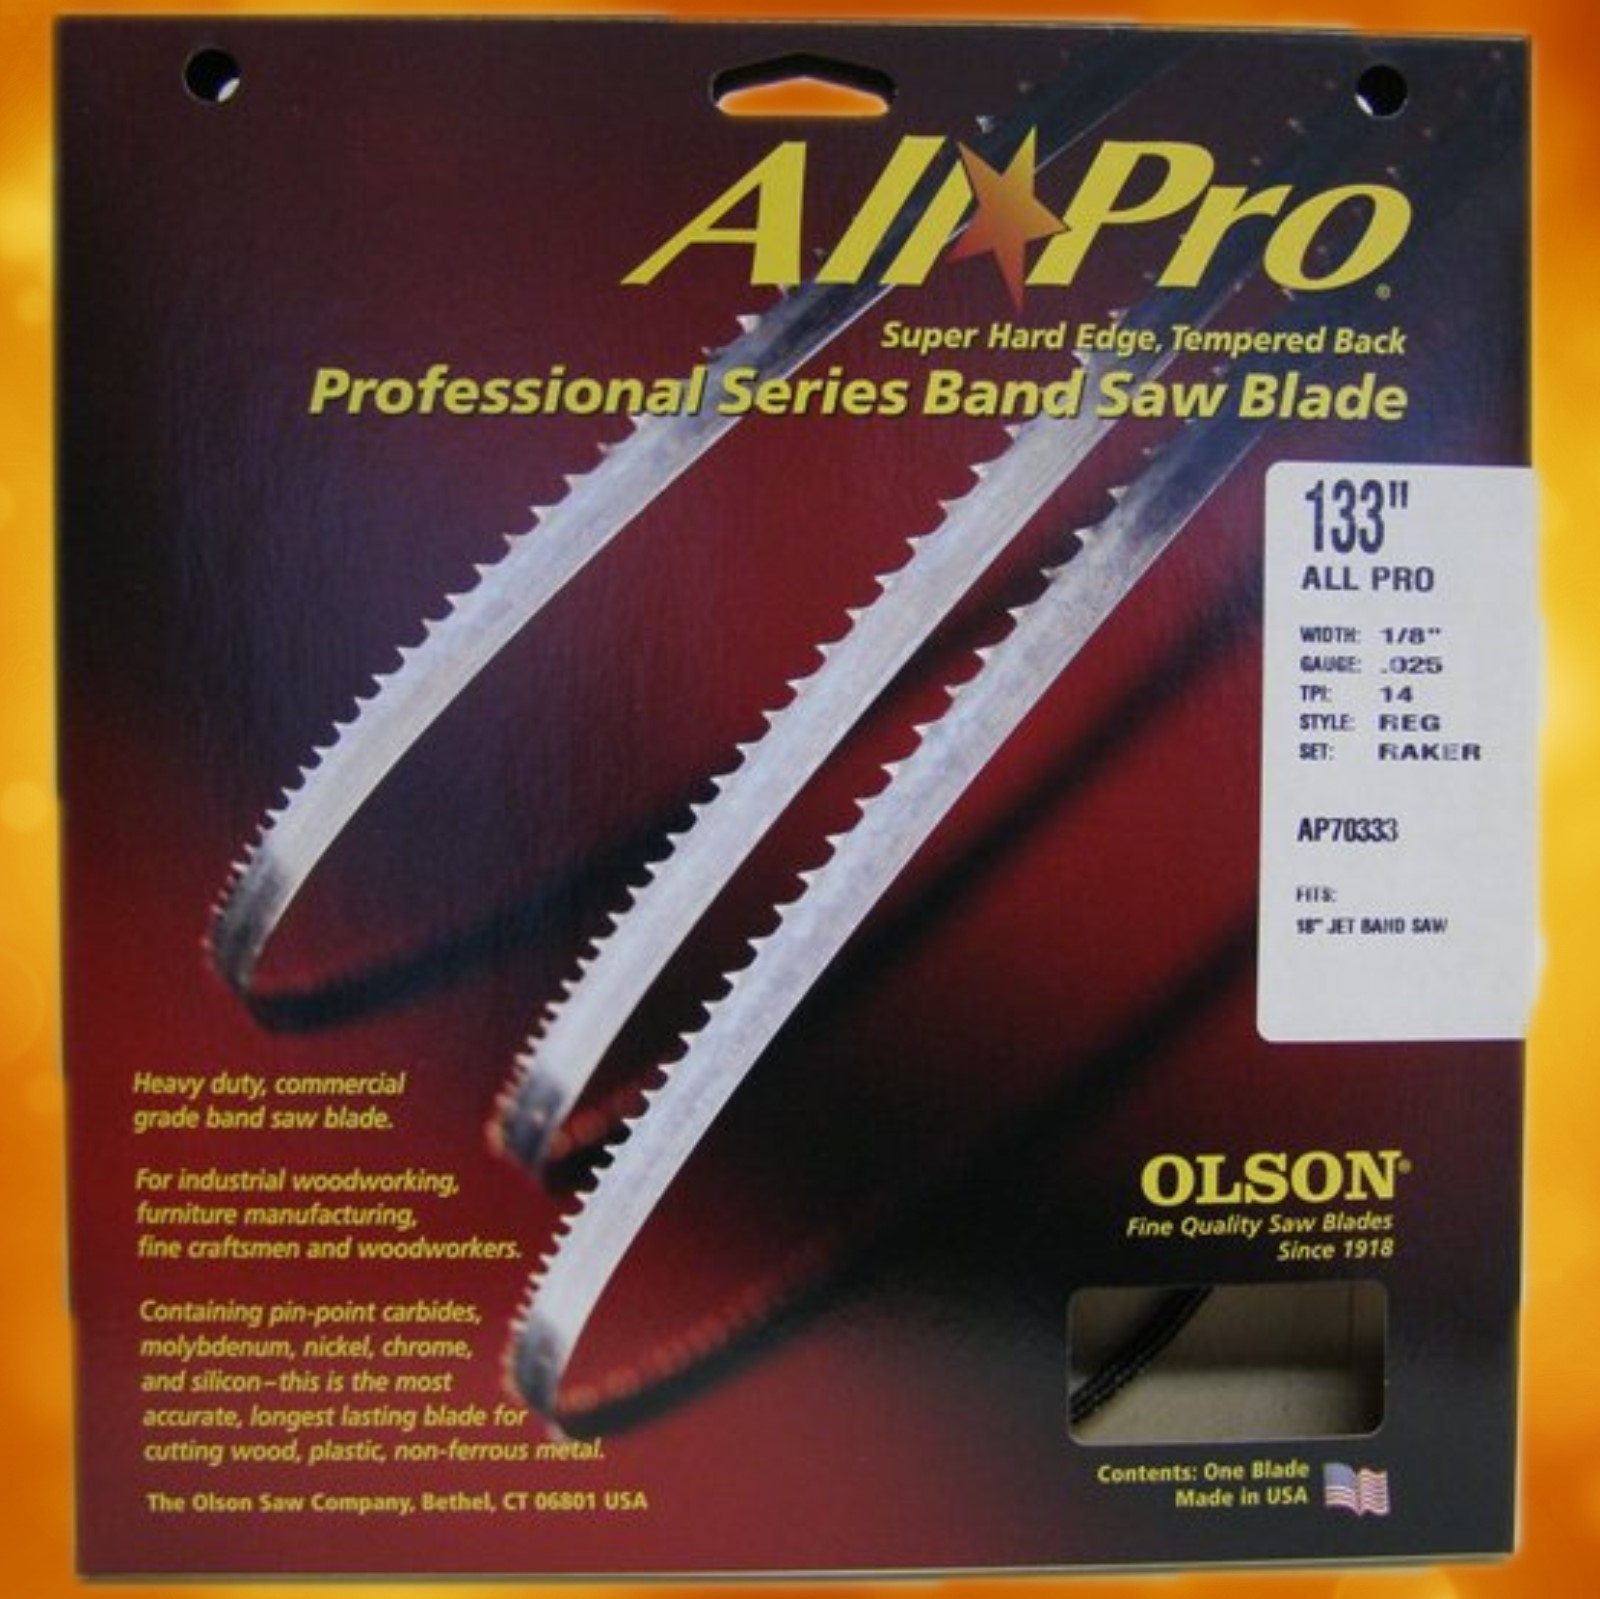 "Olson All Pro Band Saw Blades 133"" x 1/8"" x .025"" 14 TPI Style Regular AP70333"